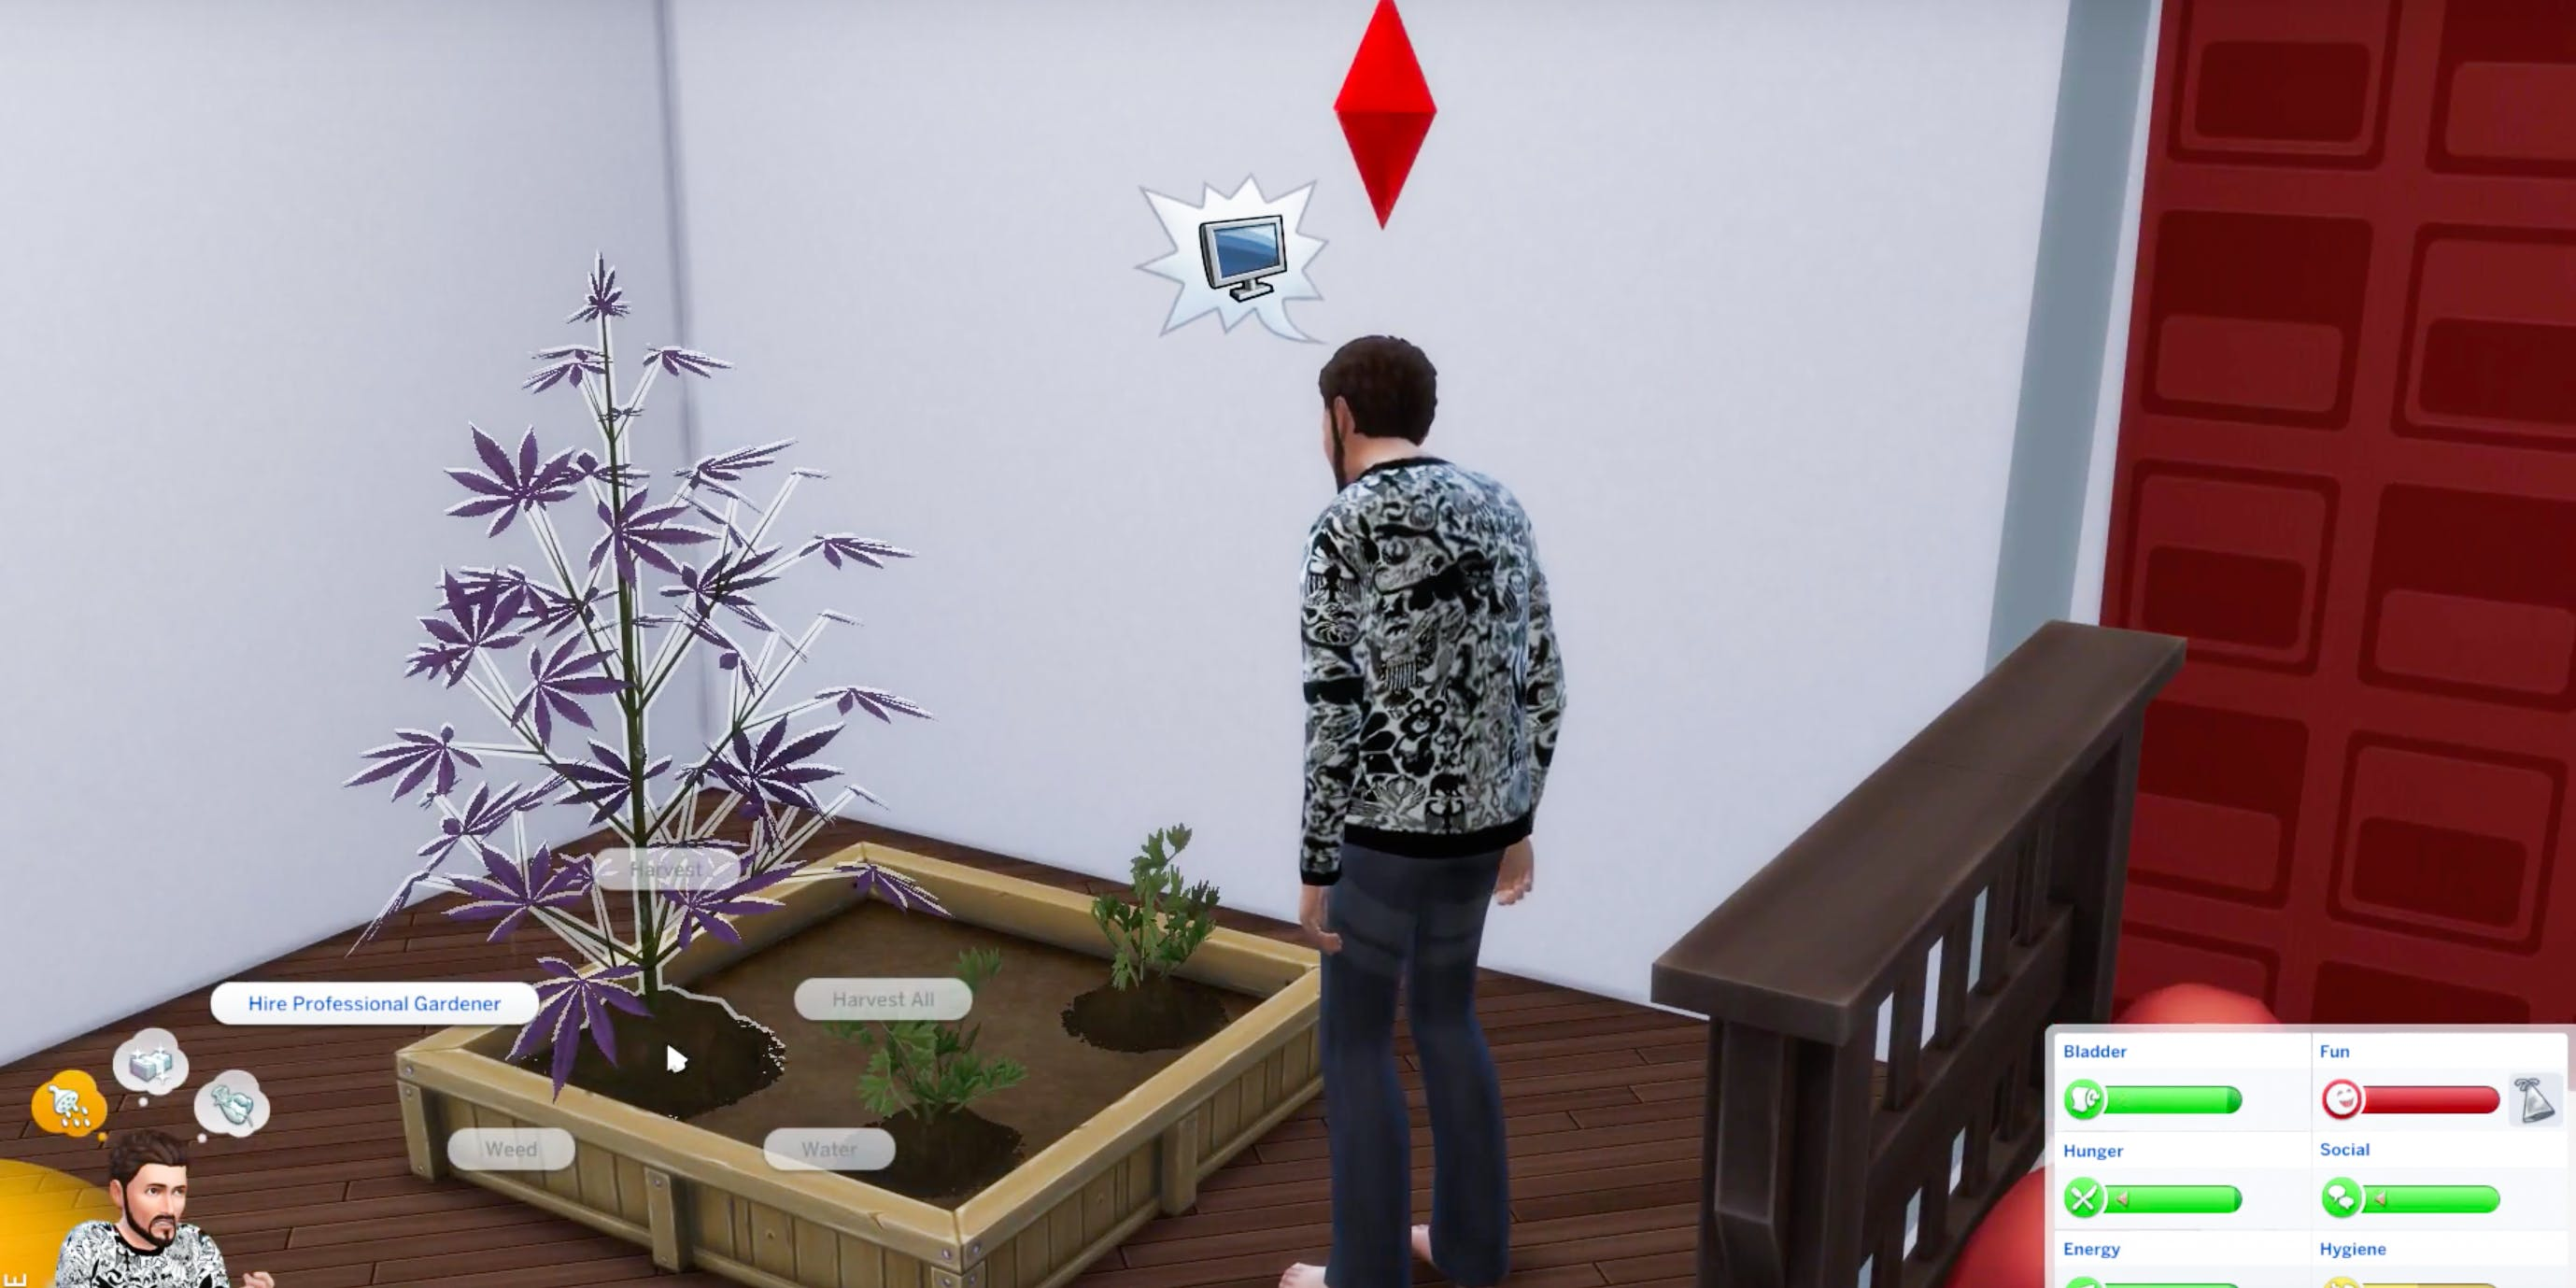 The Sims Game Finally Has Weed After Two Decades On The Market